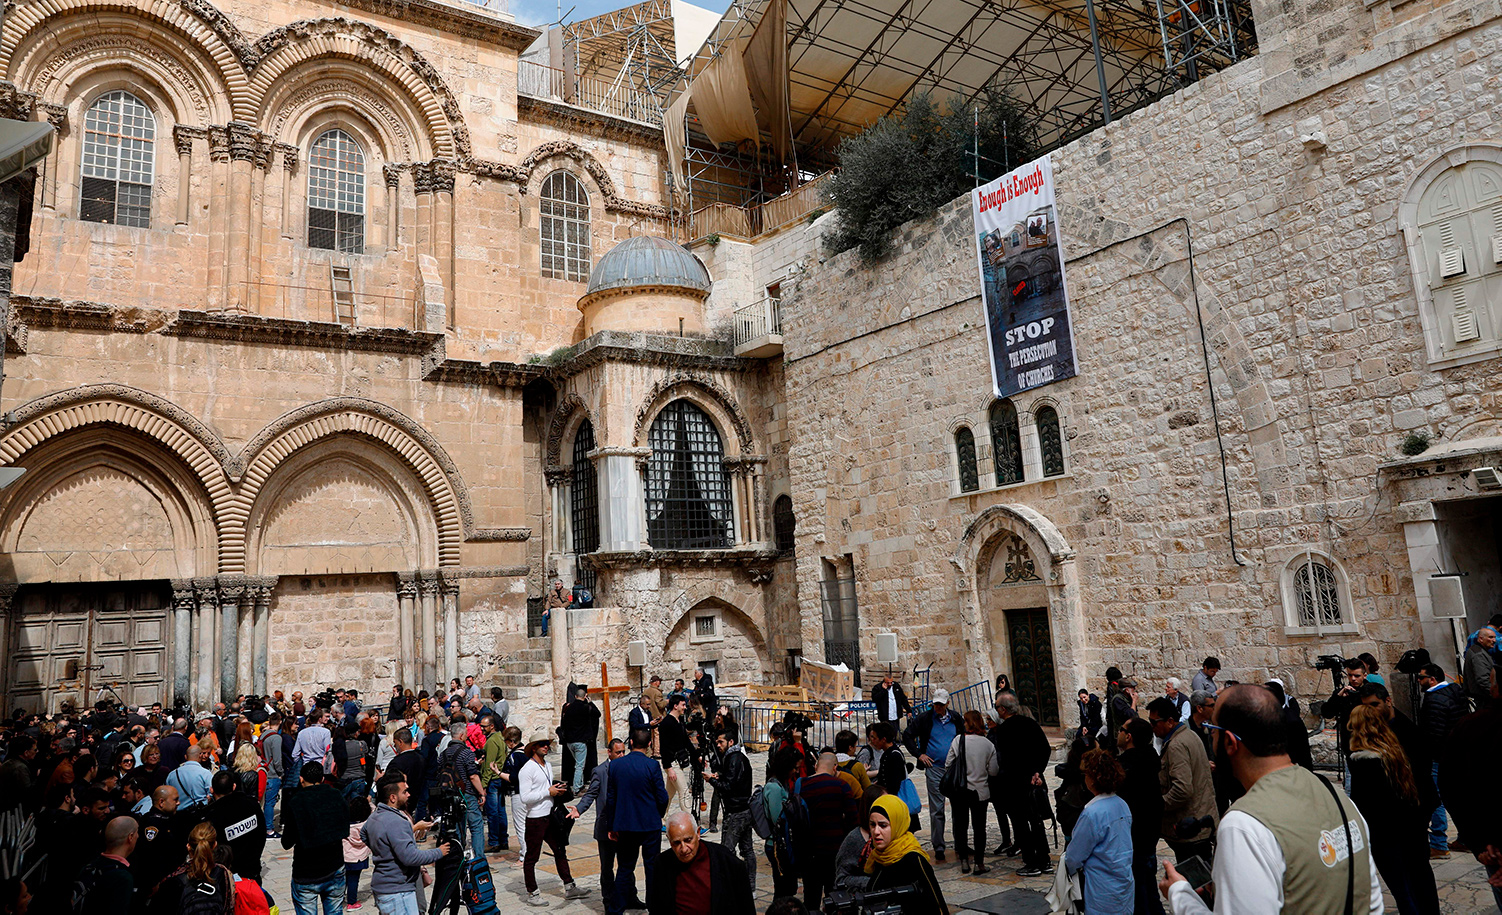 Journalists and pilgrims gather in the yard of the Church of the Holy Sepulchre in Jerusalem's Old City on February 25, 2018. GALI TIBBON/AFP/Getty Images.